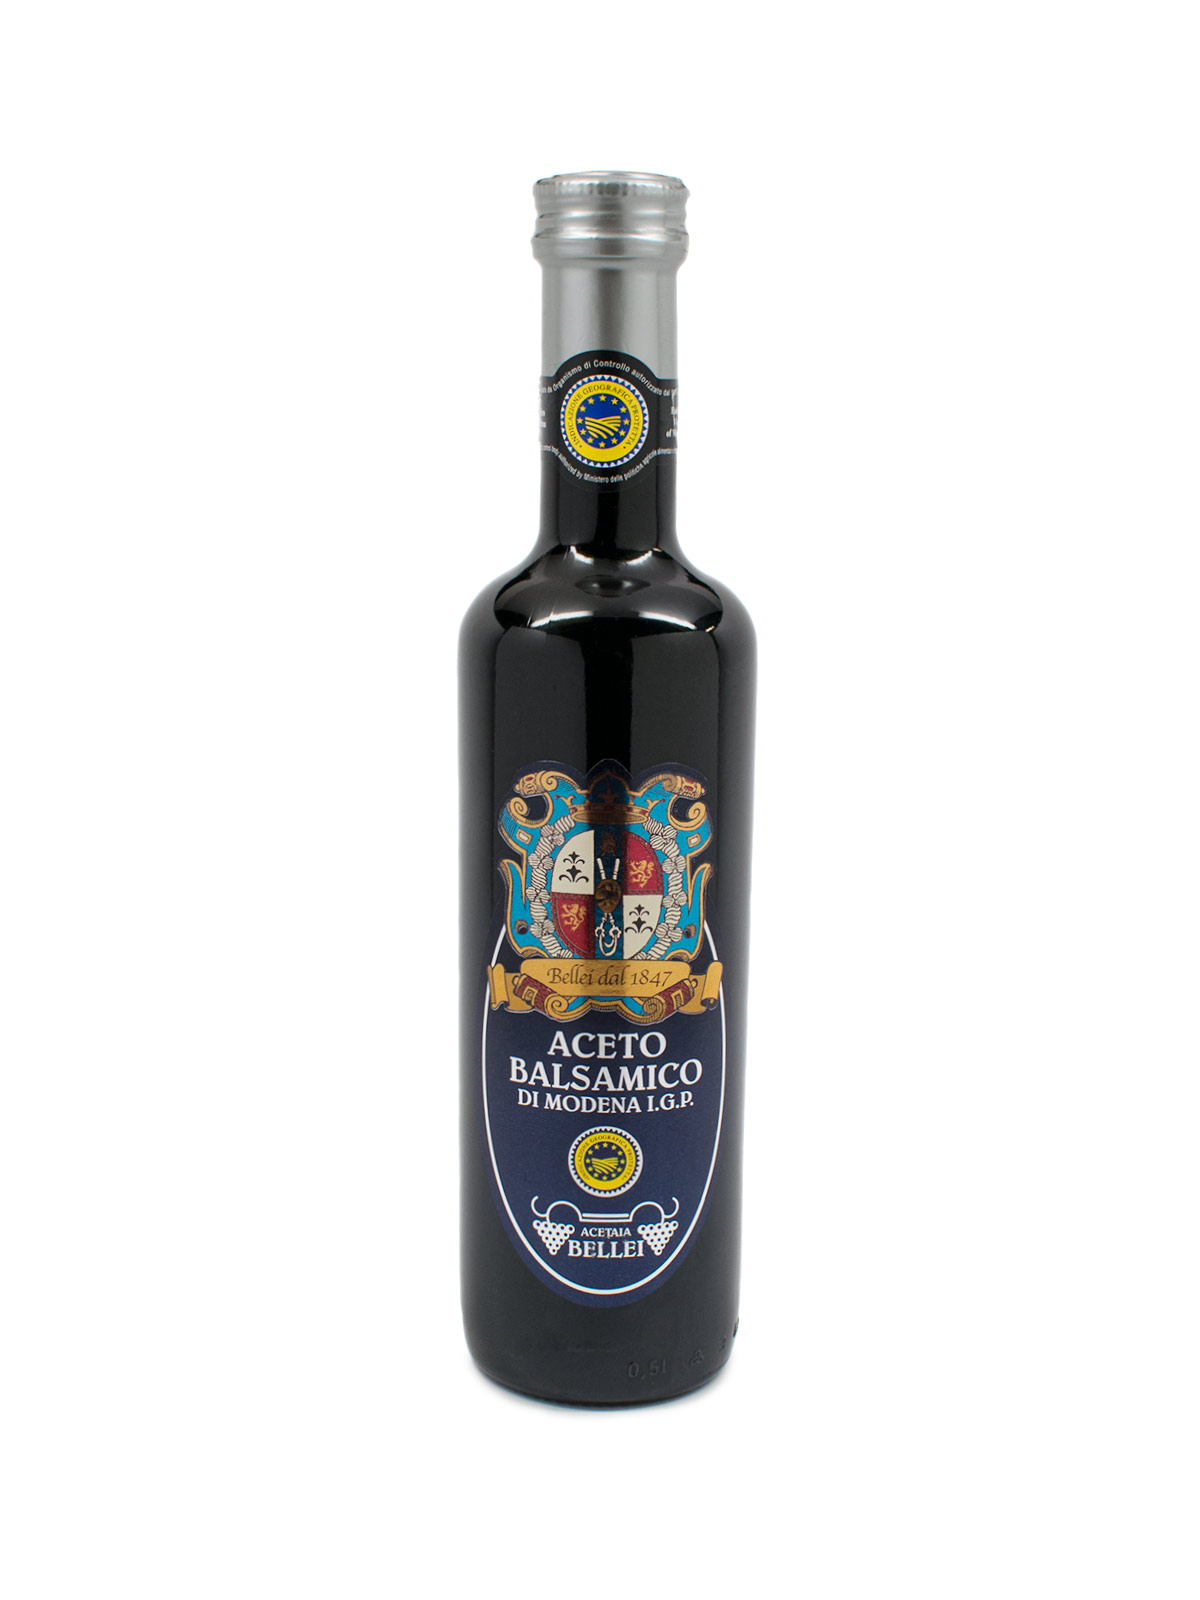 Balsamic Vinegar of Modena I.G.P. - Argento - 2 Year - Oils & Vinegars - Buon'Italia